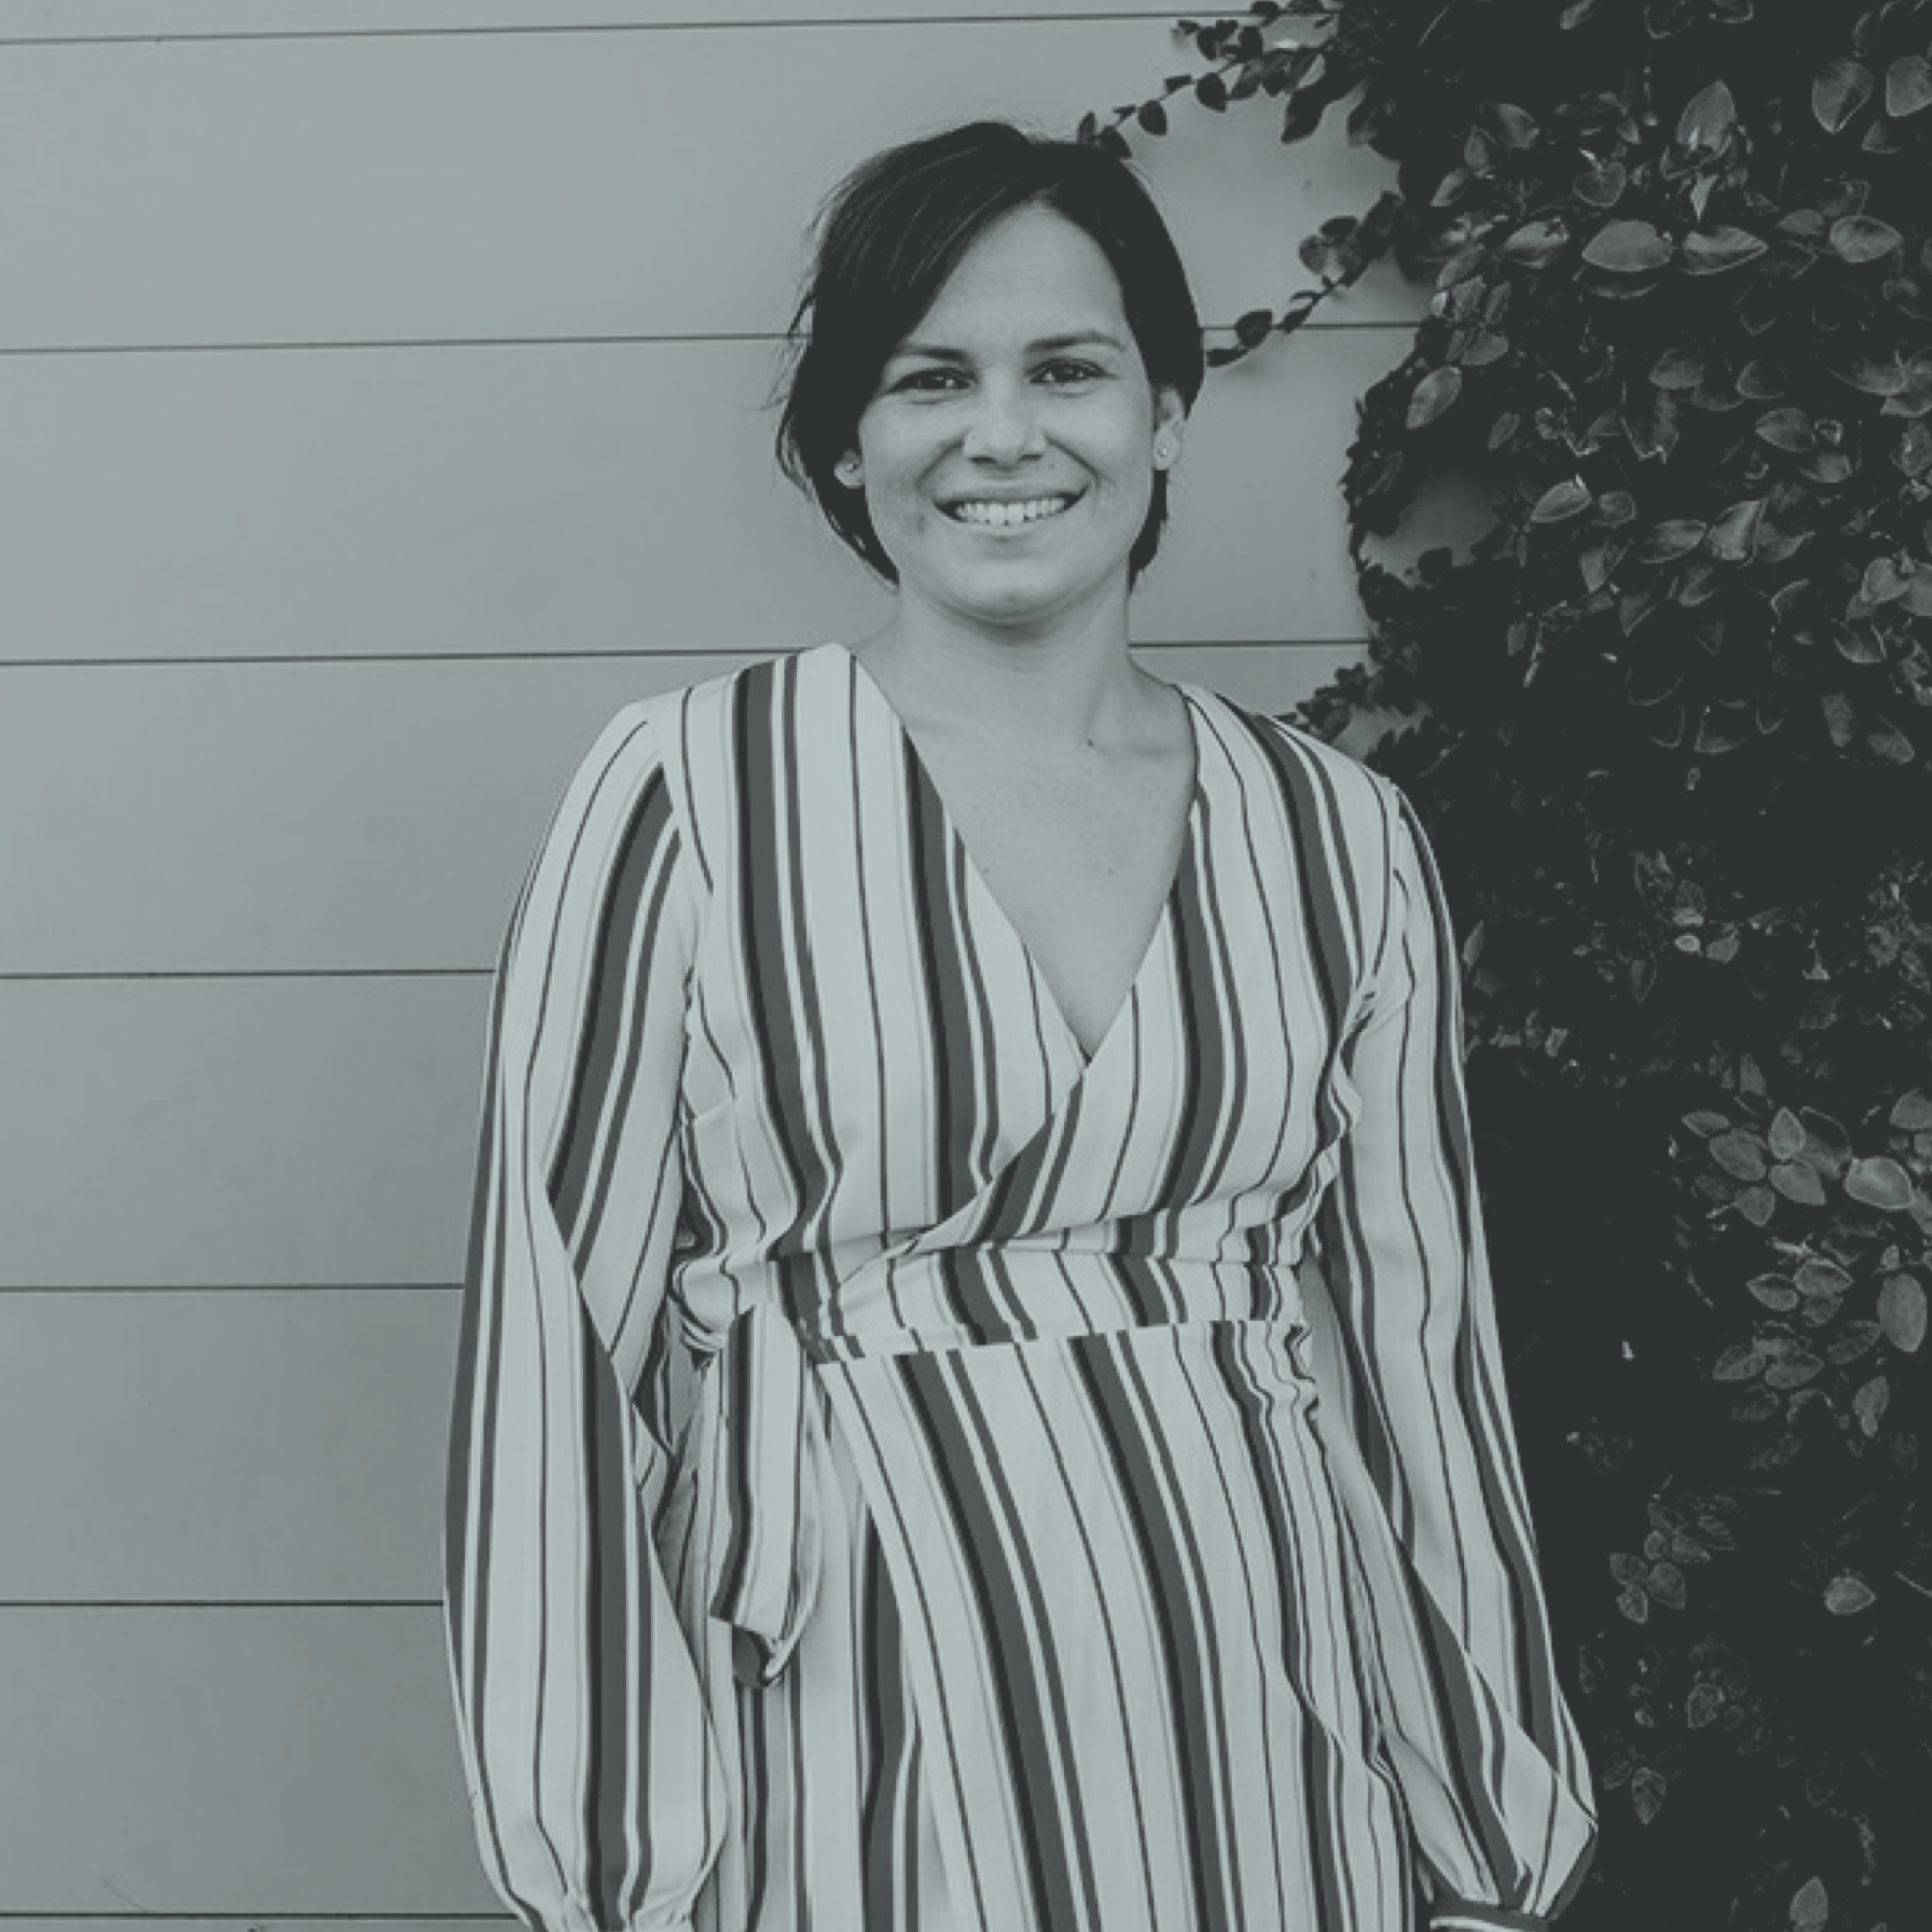 """Jodie, from DotCom Digital. - """"My investment in Harvest Studios will have given me an ROI of 2.5x purely through Instagram connections, enquiries and bookings. Amie's strategy pushed me to make some positive changes in my business to generate a more reliable income stream."""""""